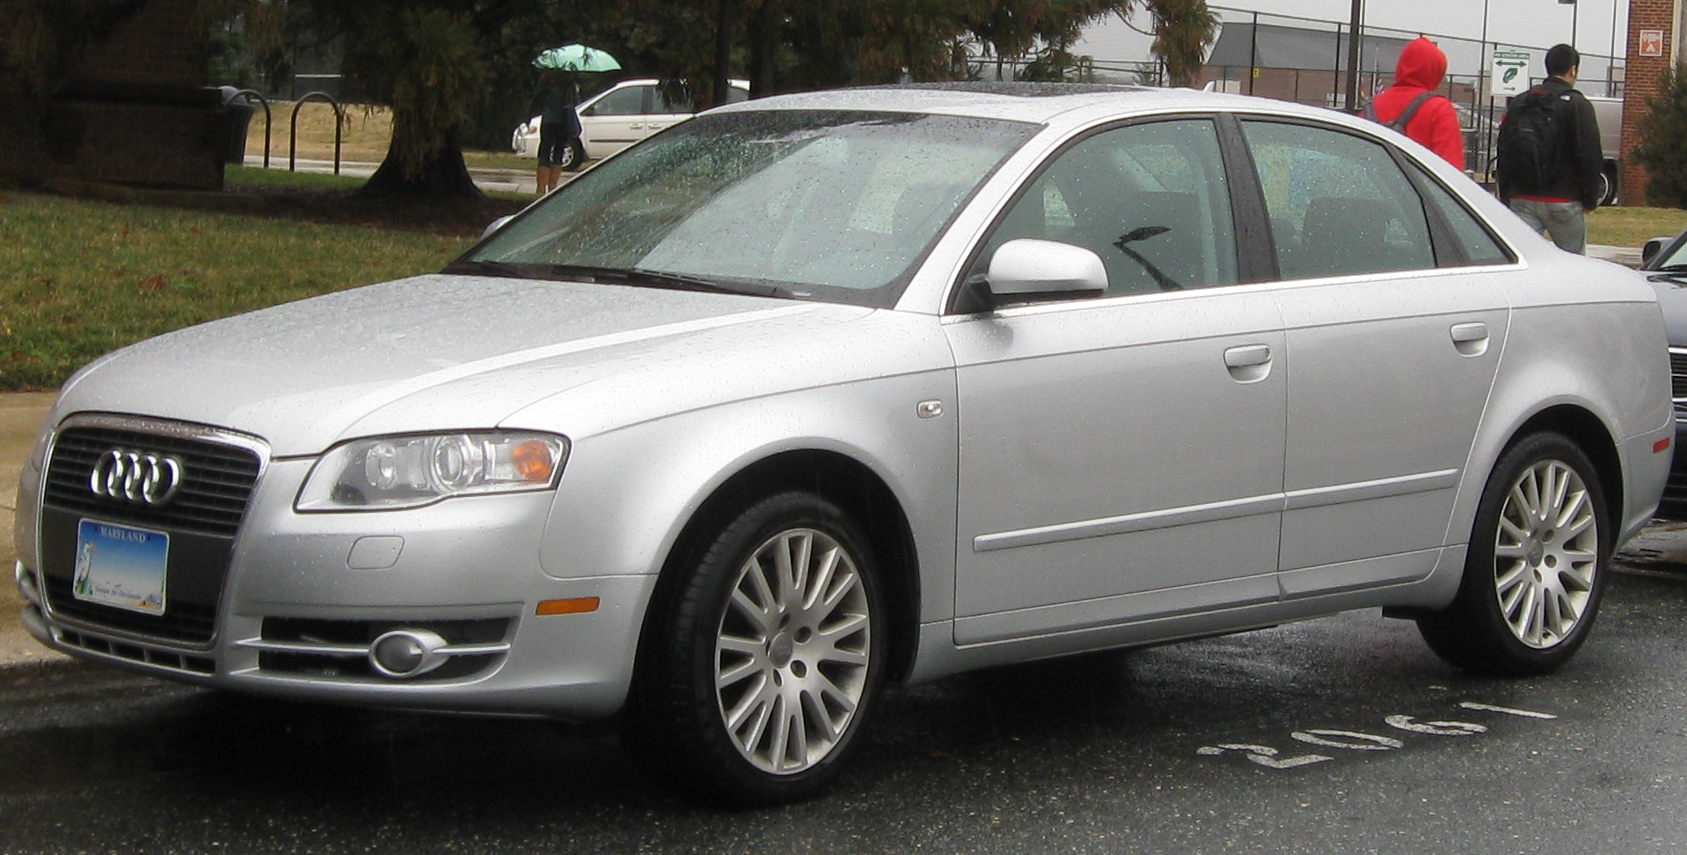 pictures of audi a4 (8e) 2007 #9